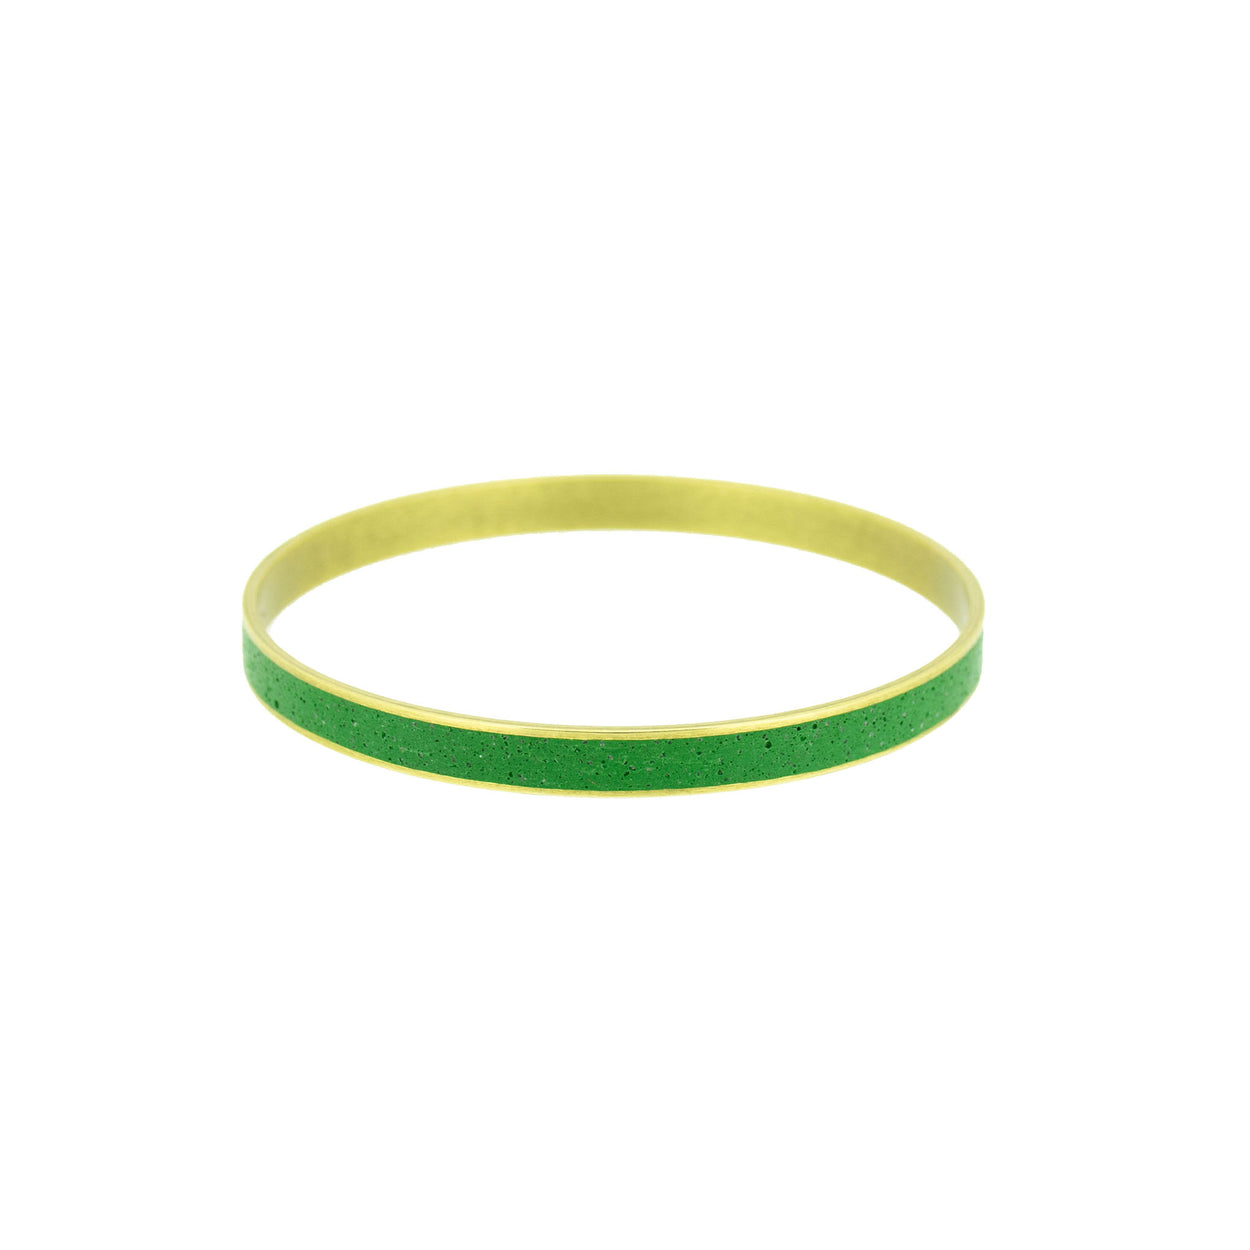 Standard Gauge Bangle Bracelet BRASS + CONCRETE Green